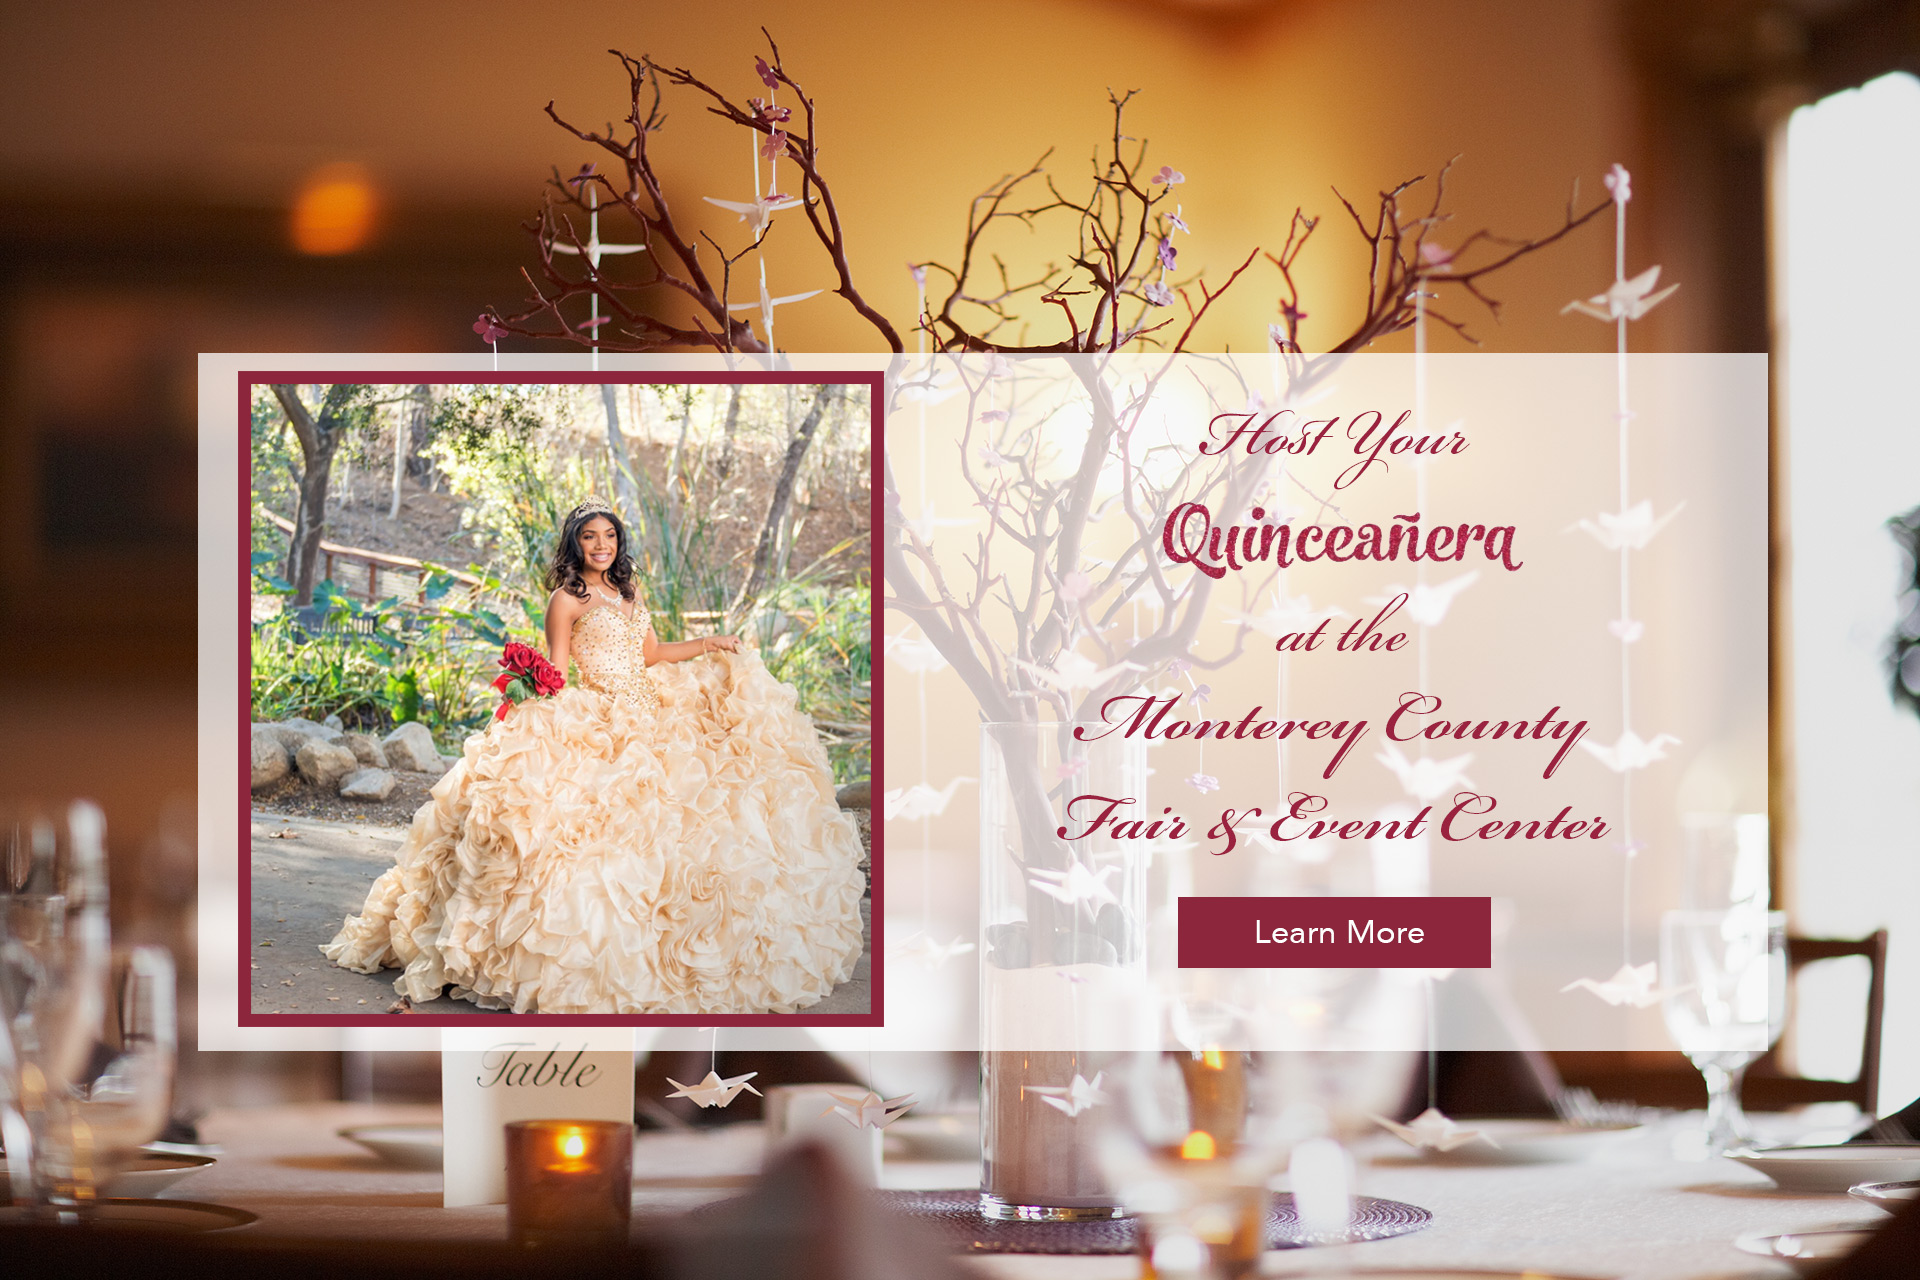 Host your Quinceanera at the Monterey County Fair & Event Center